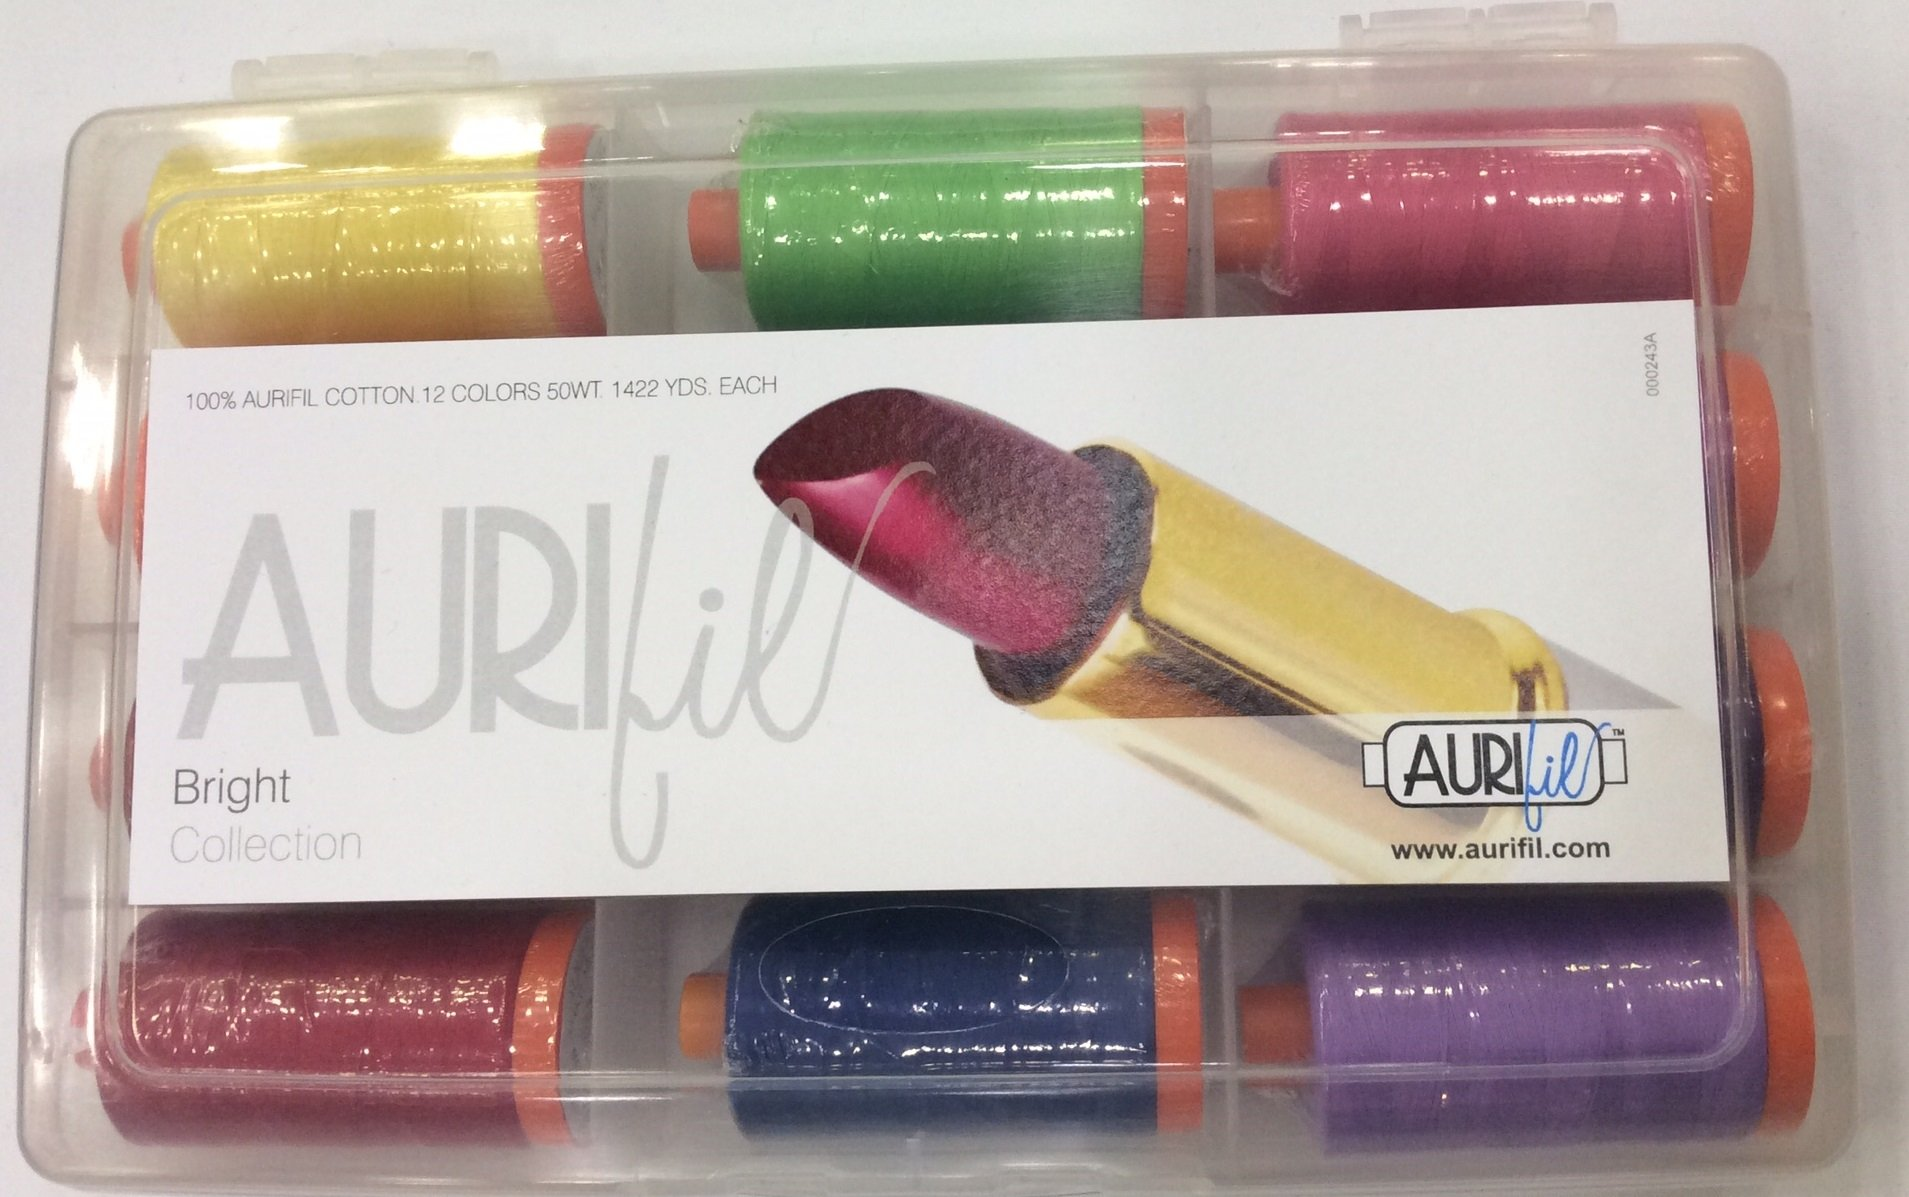 Aurifil's Bright Collection